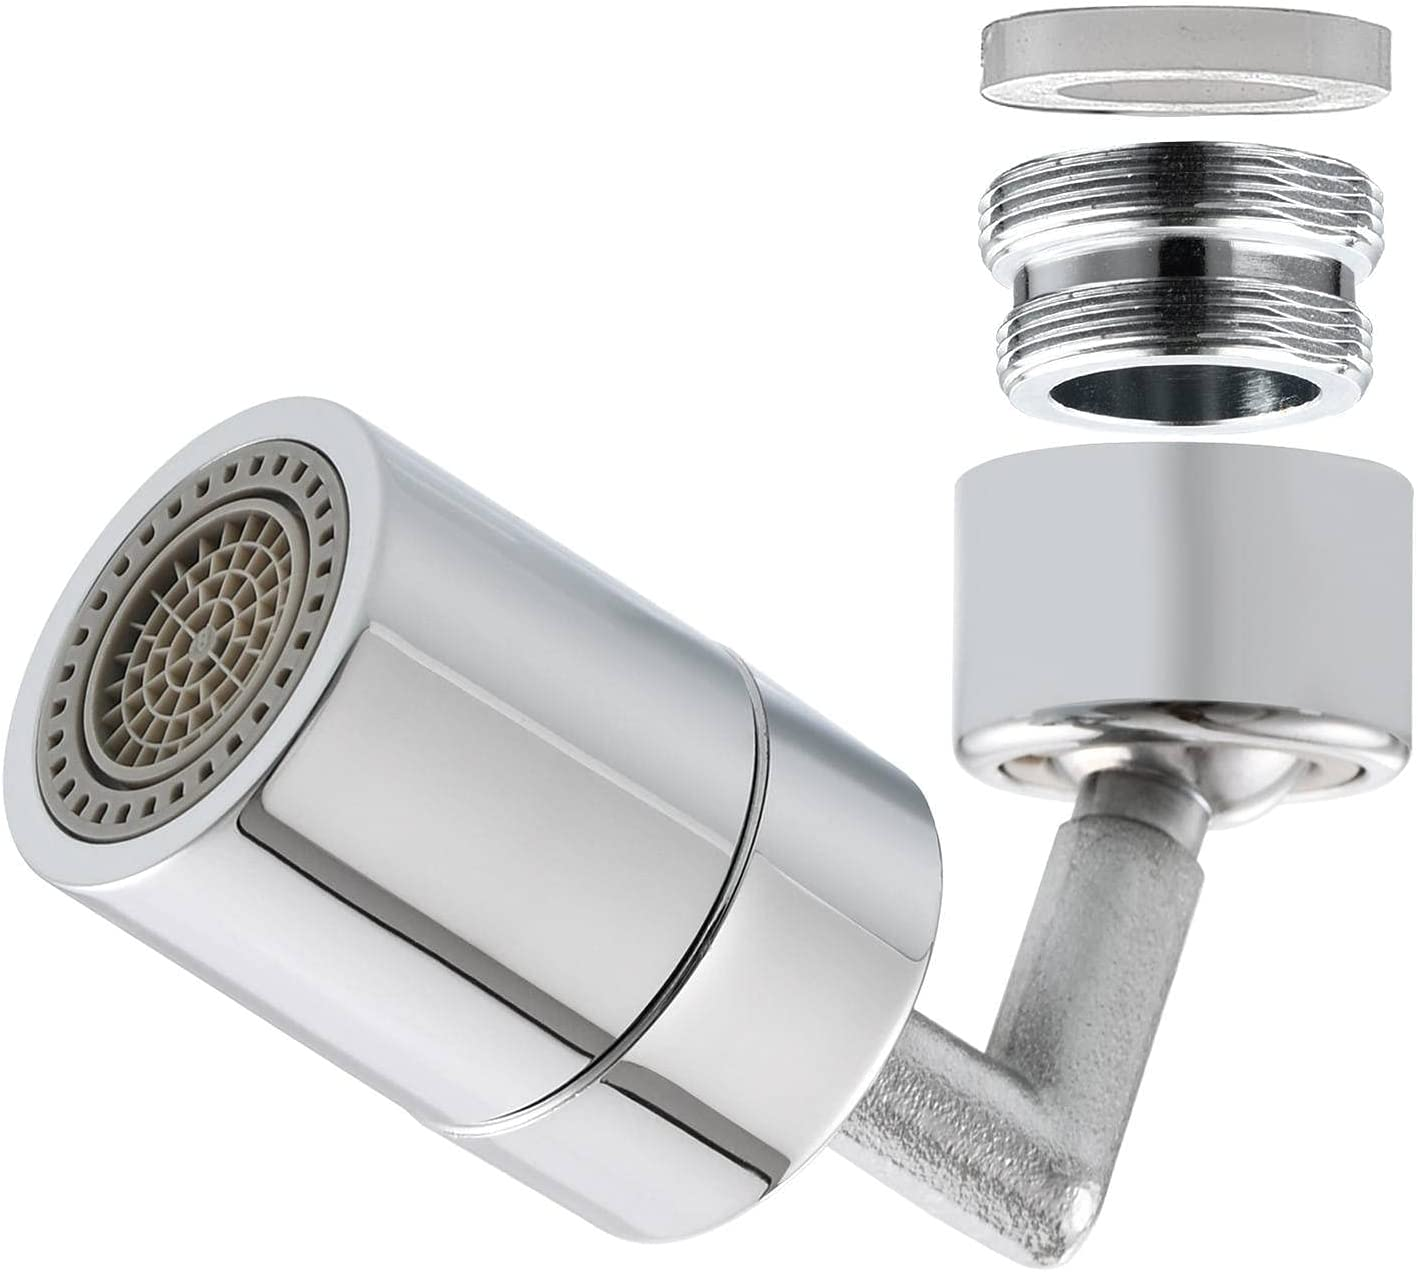 N\C Brass Faucet Aerator M22 X Sink for Chrome 5 popular Tap Cheap sale M24